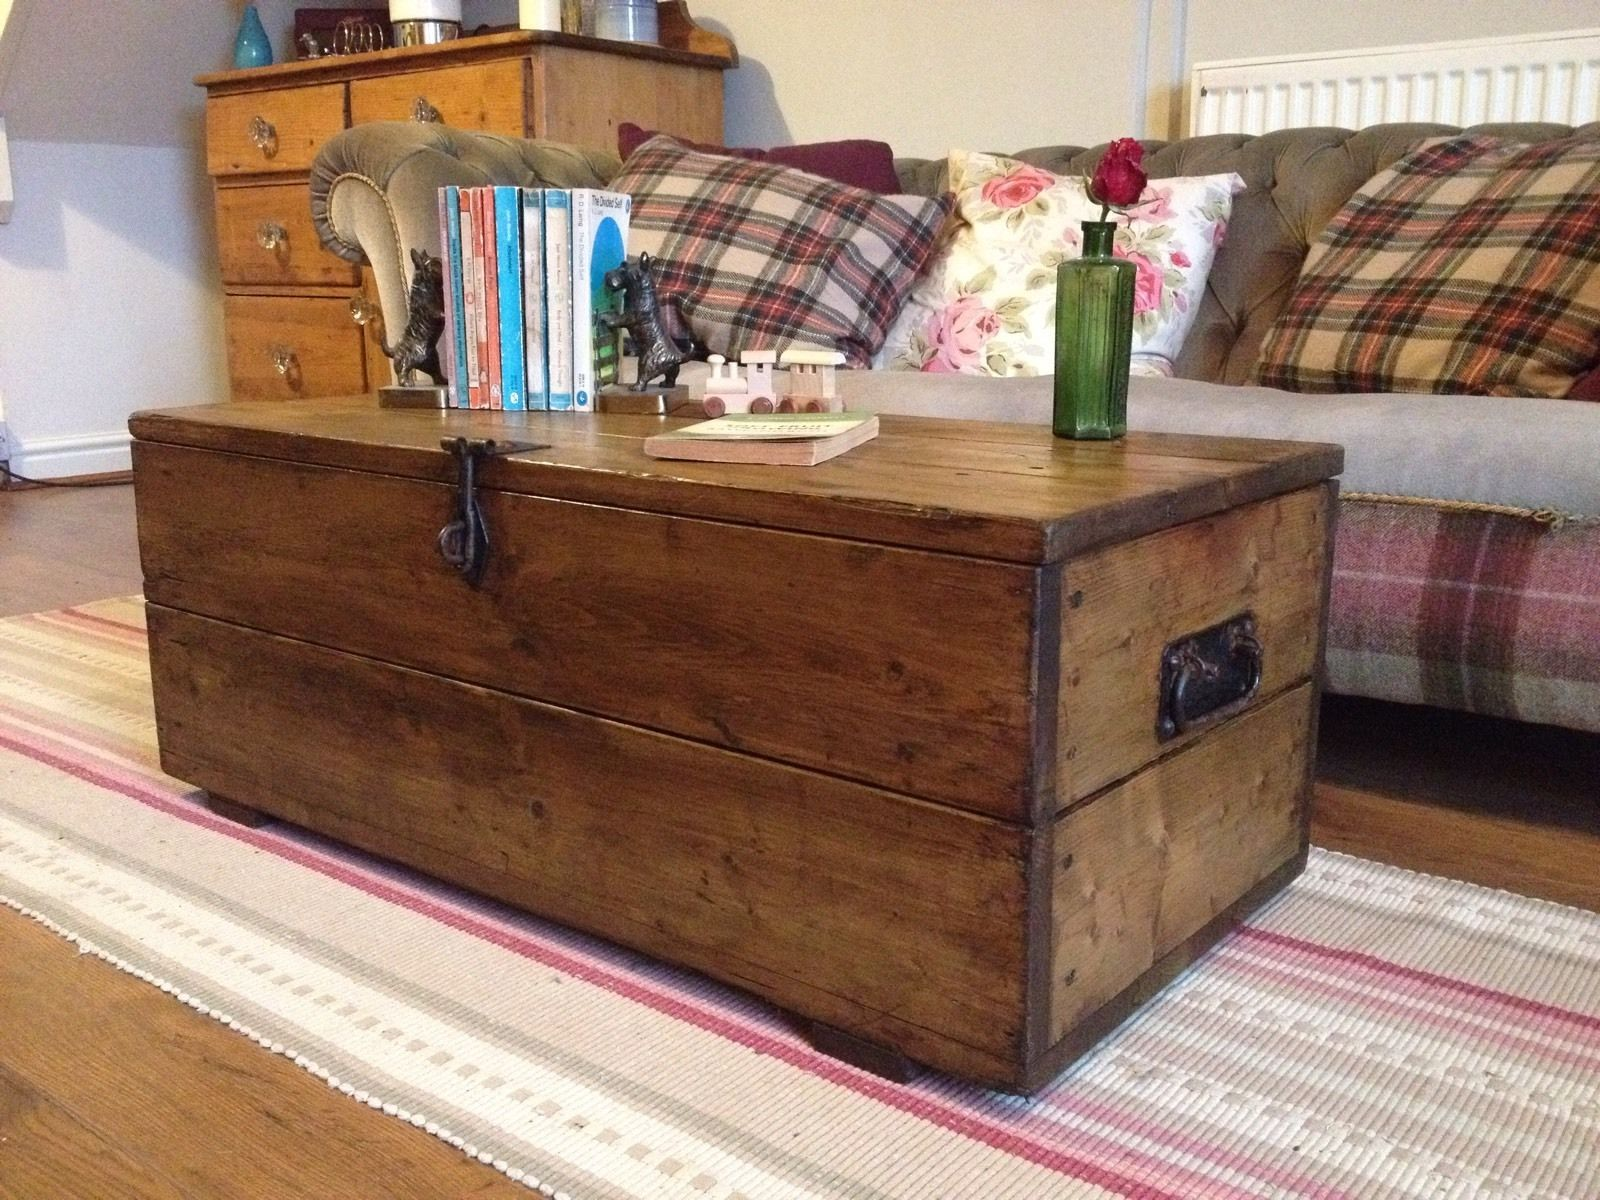 Old Rustic Pine Box Vintage Wooden Chest Coffee Table Toy